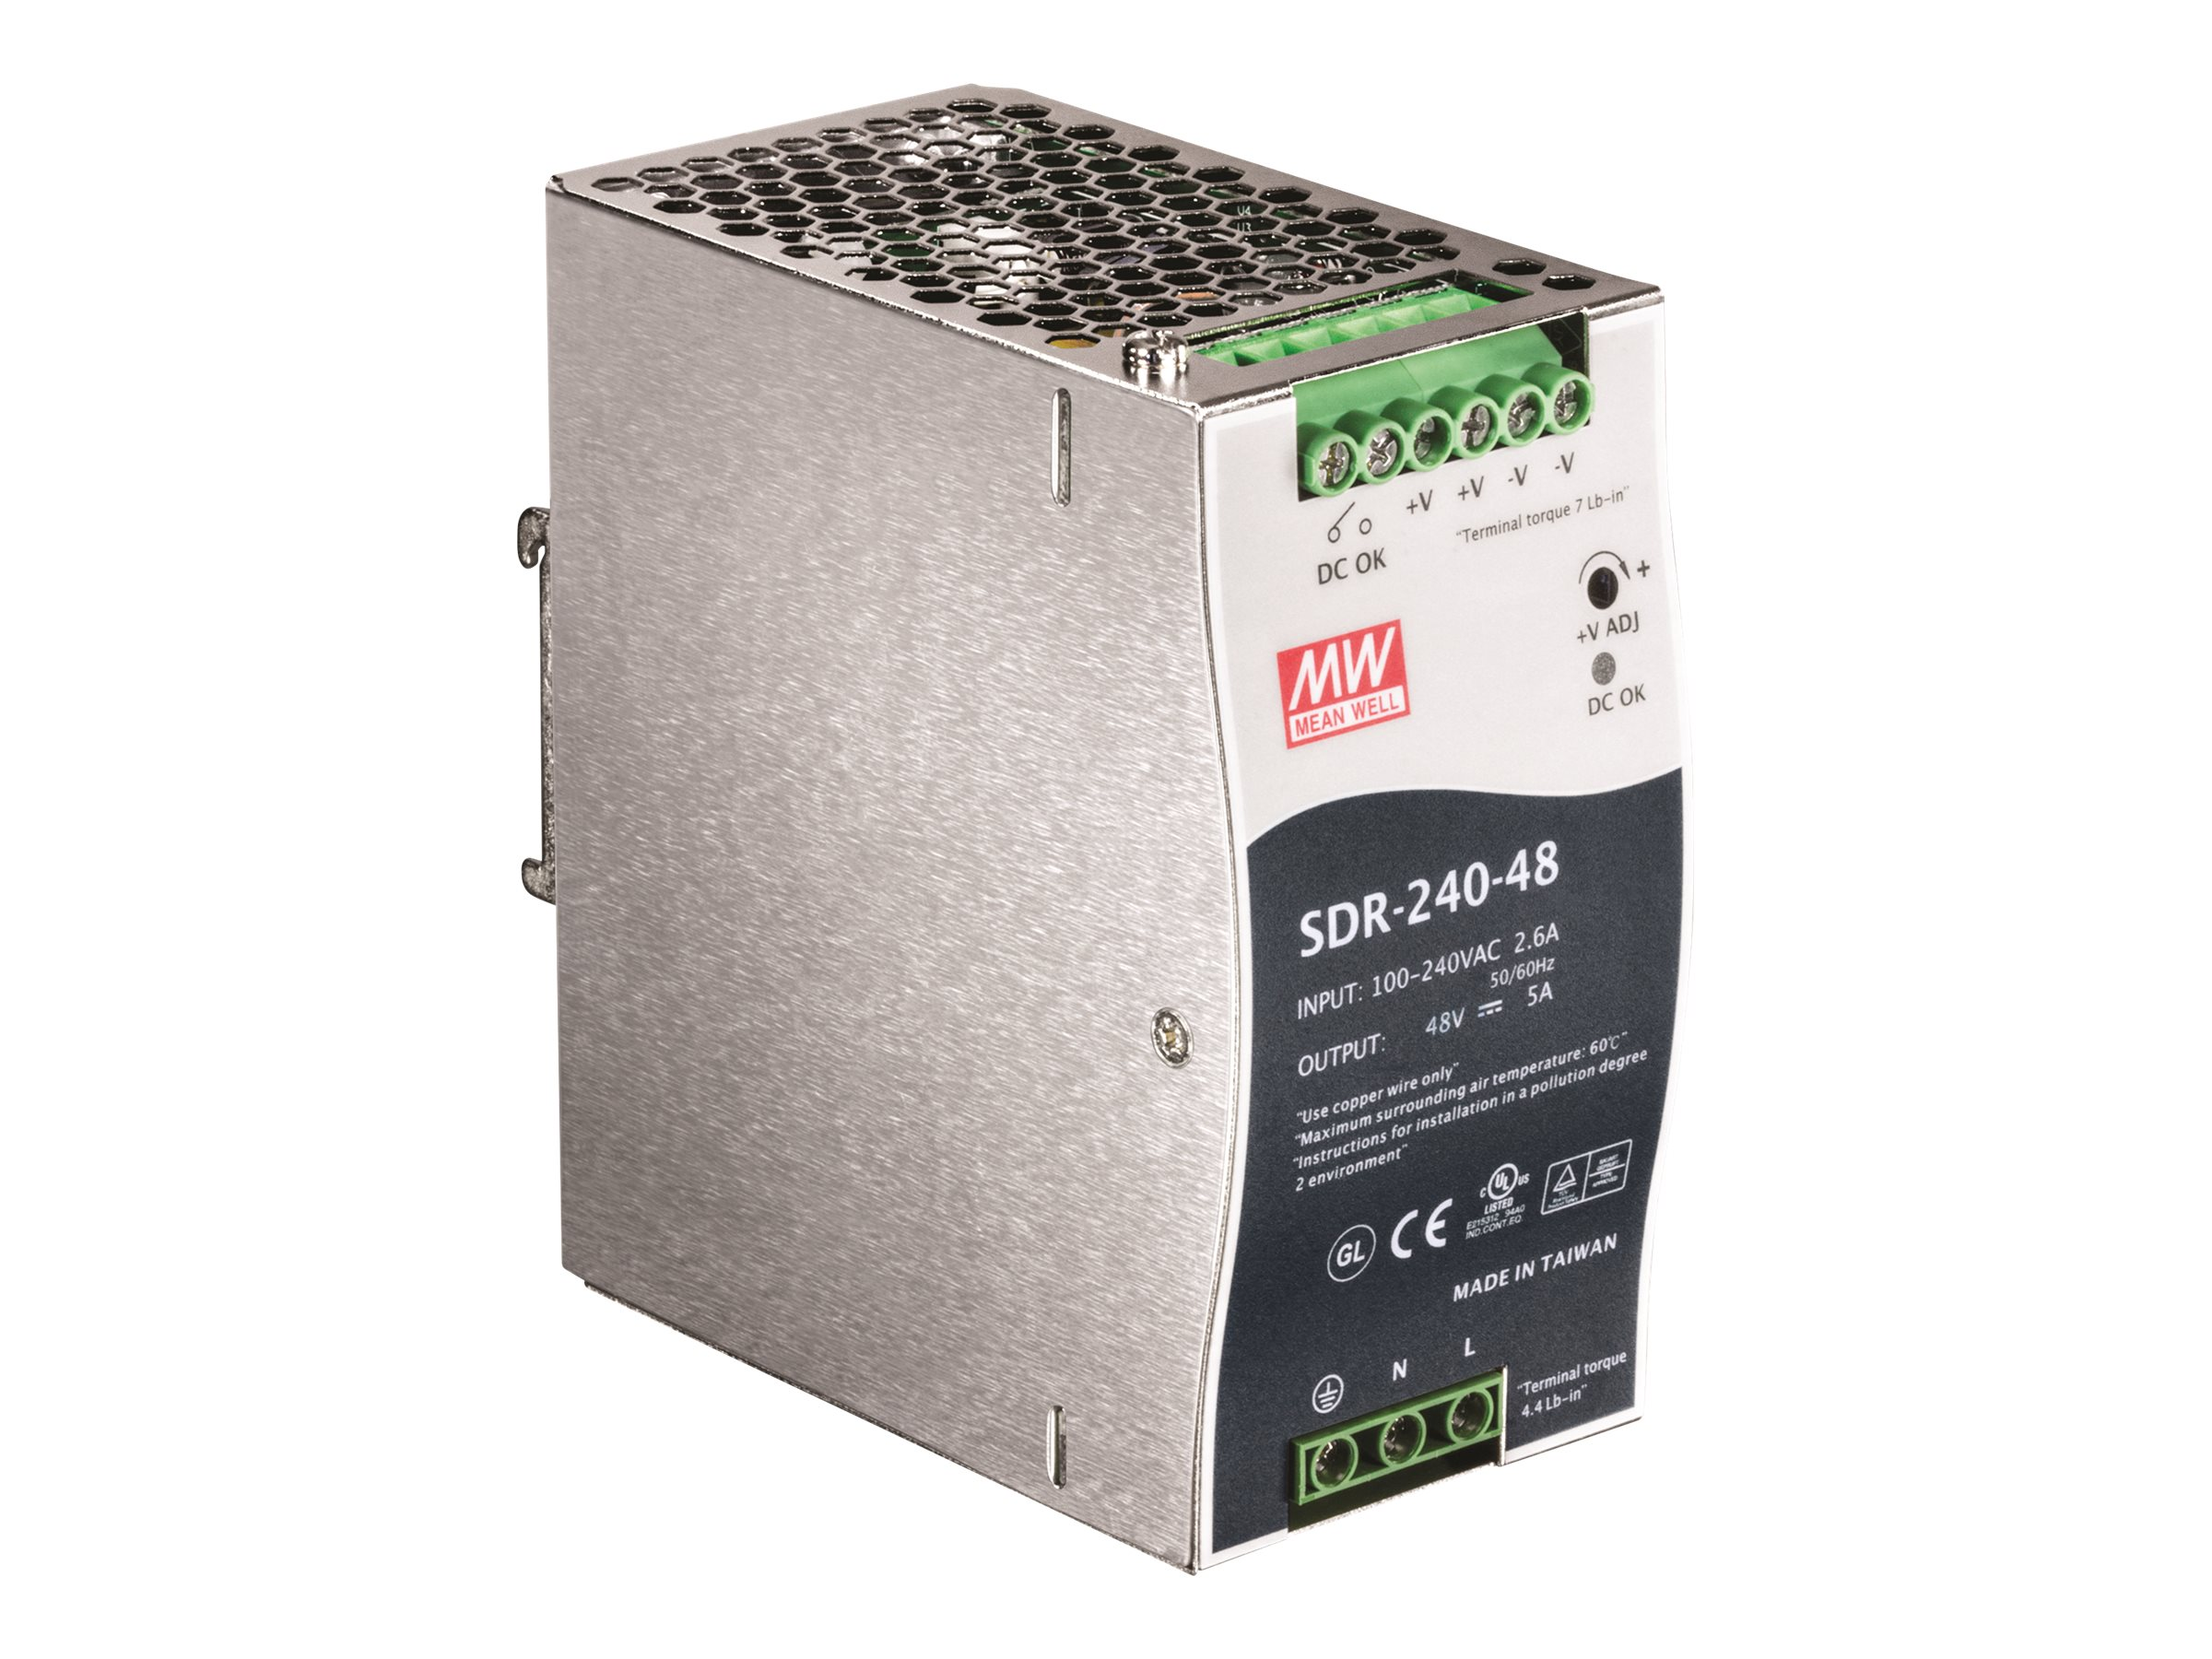 TRENDnet 240W Single Output Industrial DIN-Rail Power Supply, TI-S24048